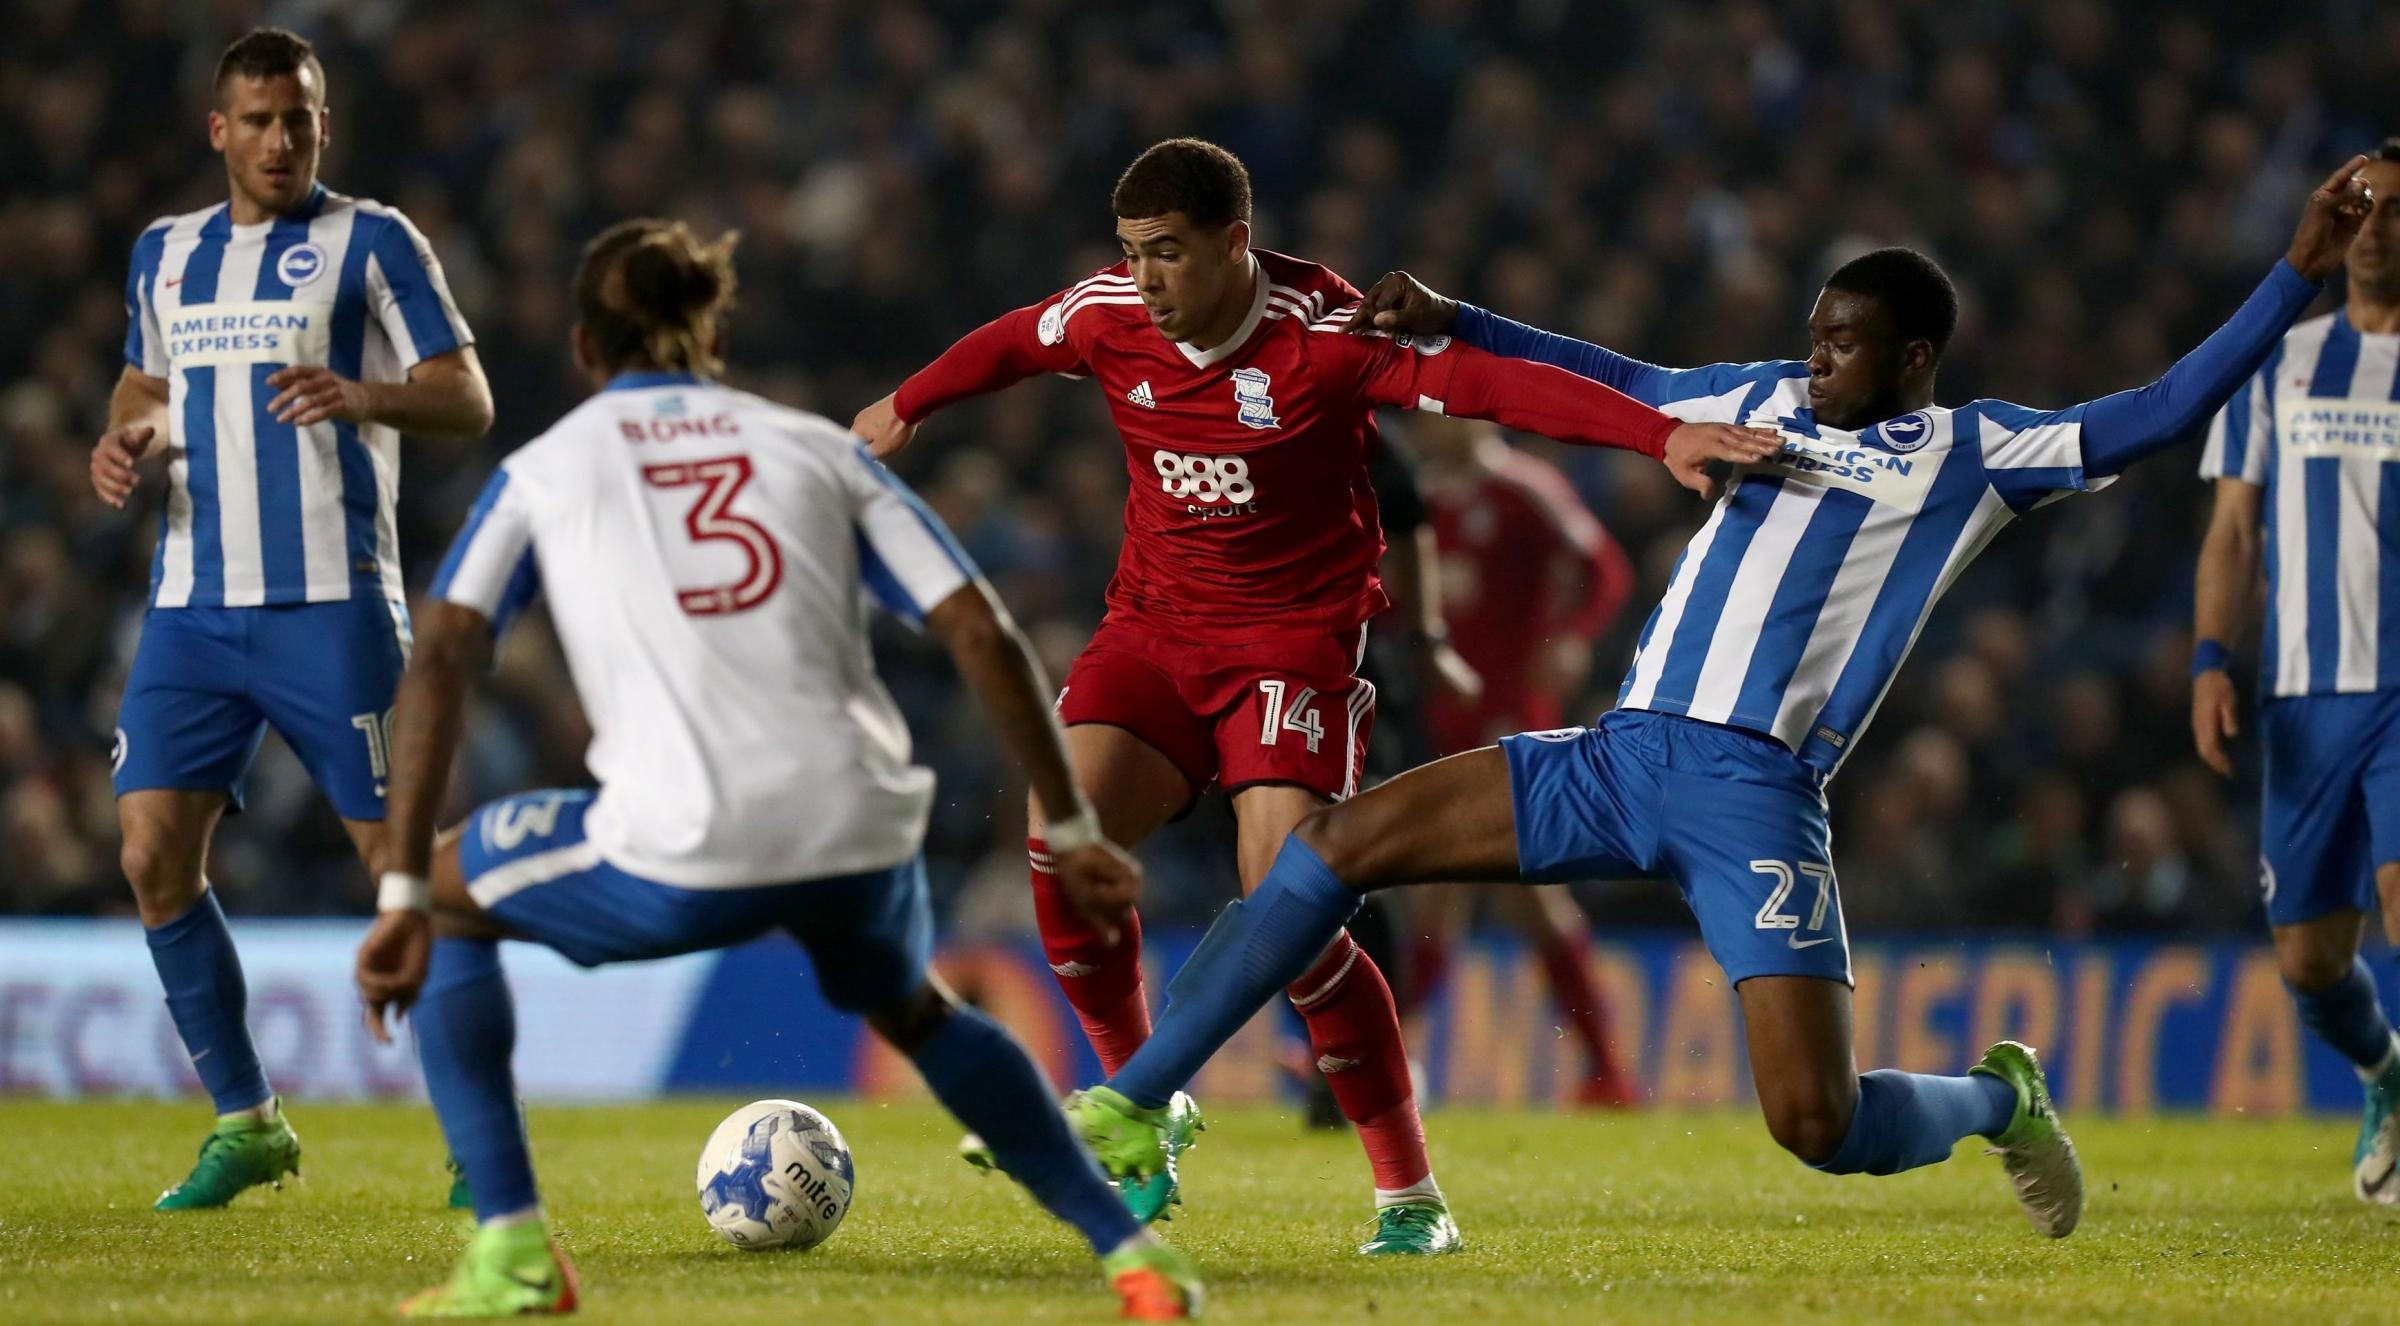 Albion kid Tomori has grown up a lot. He can prove it at the Amex